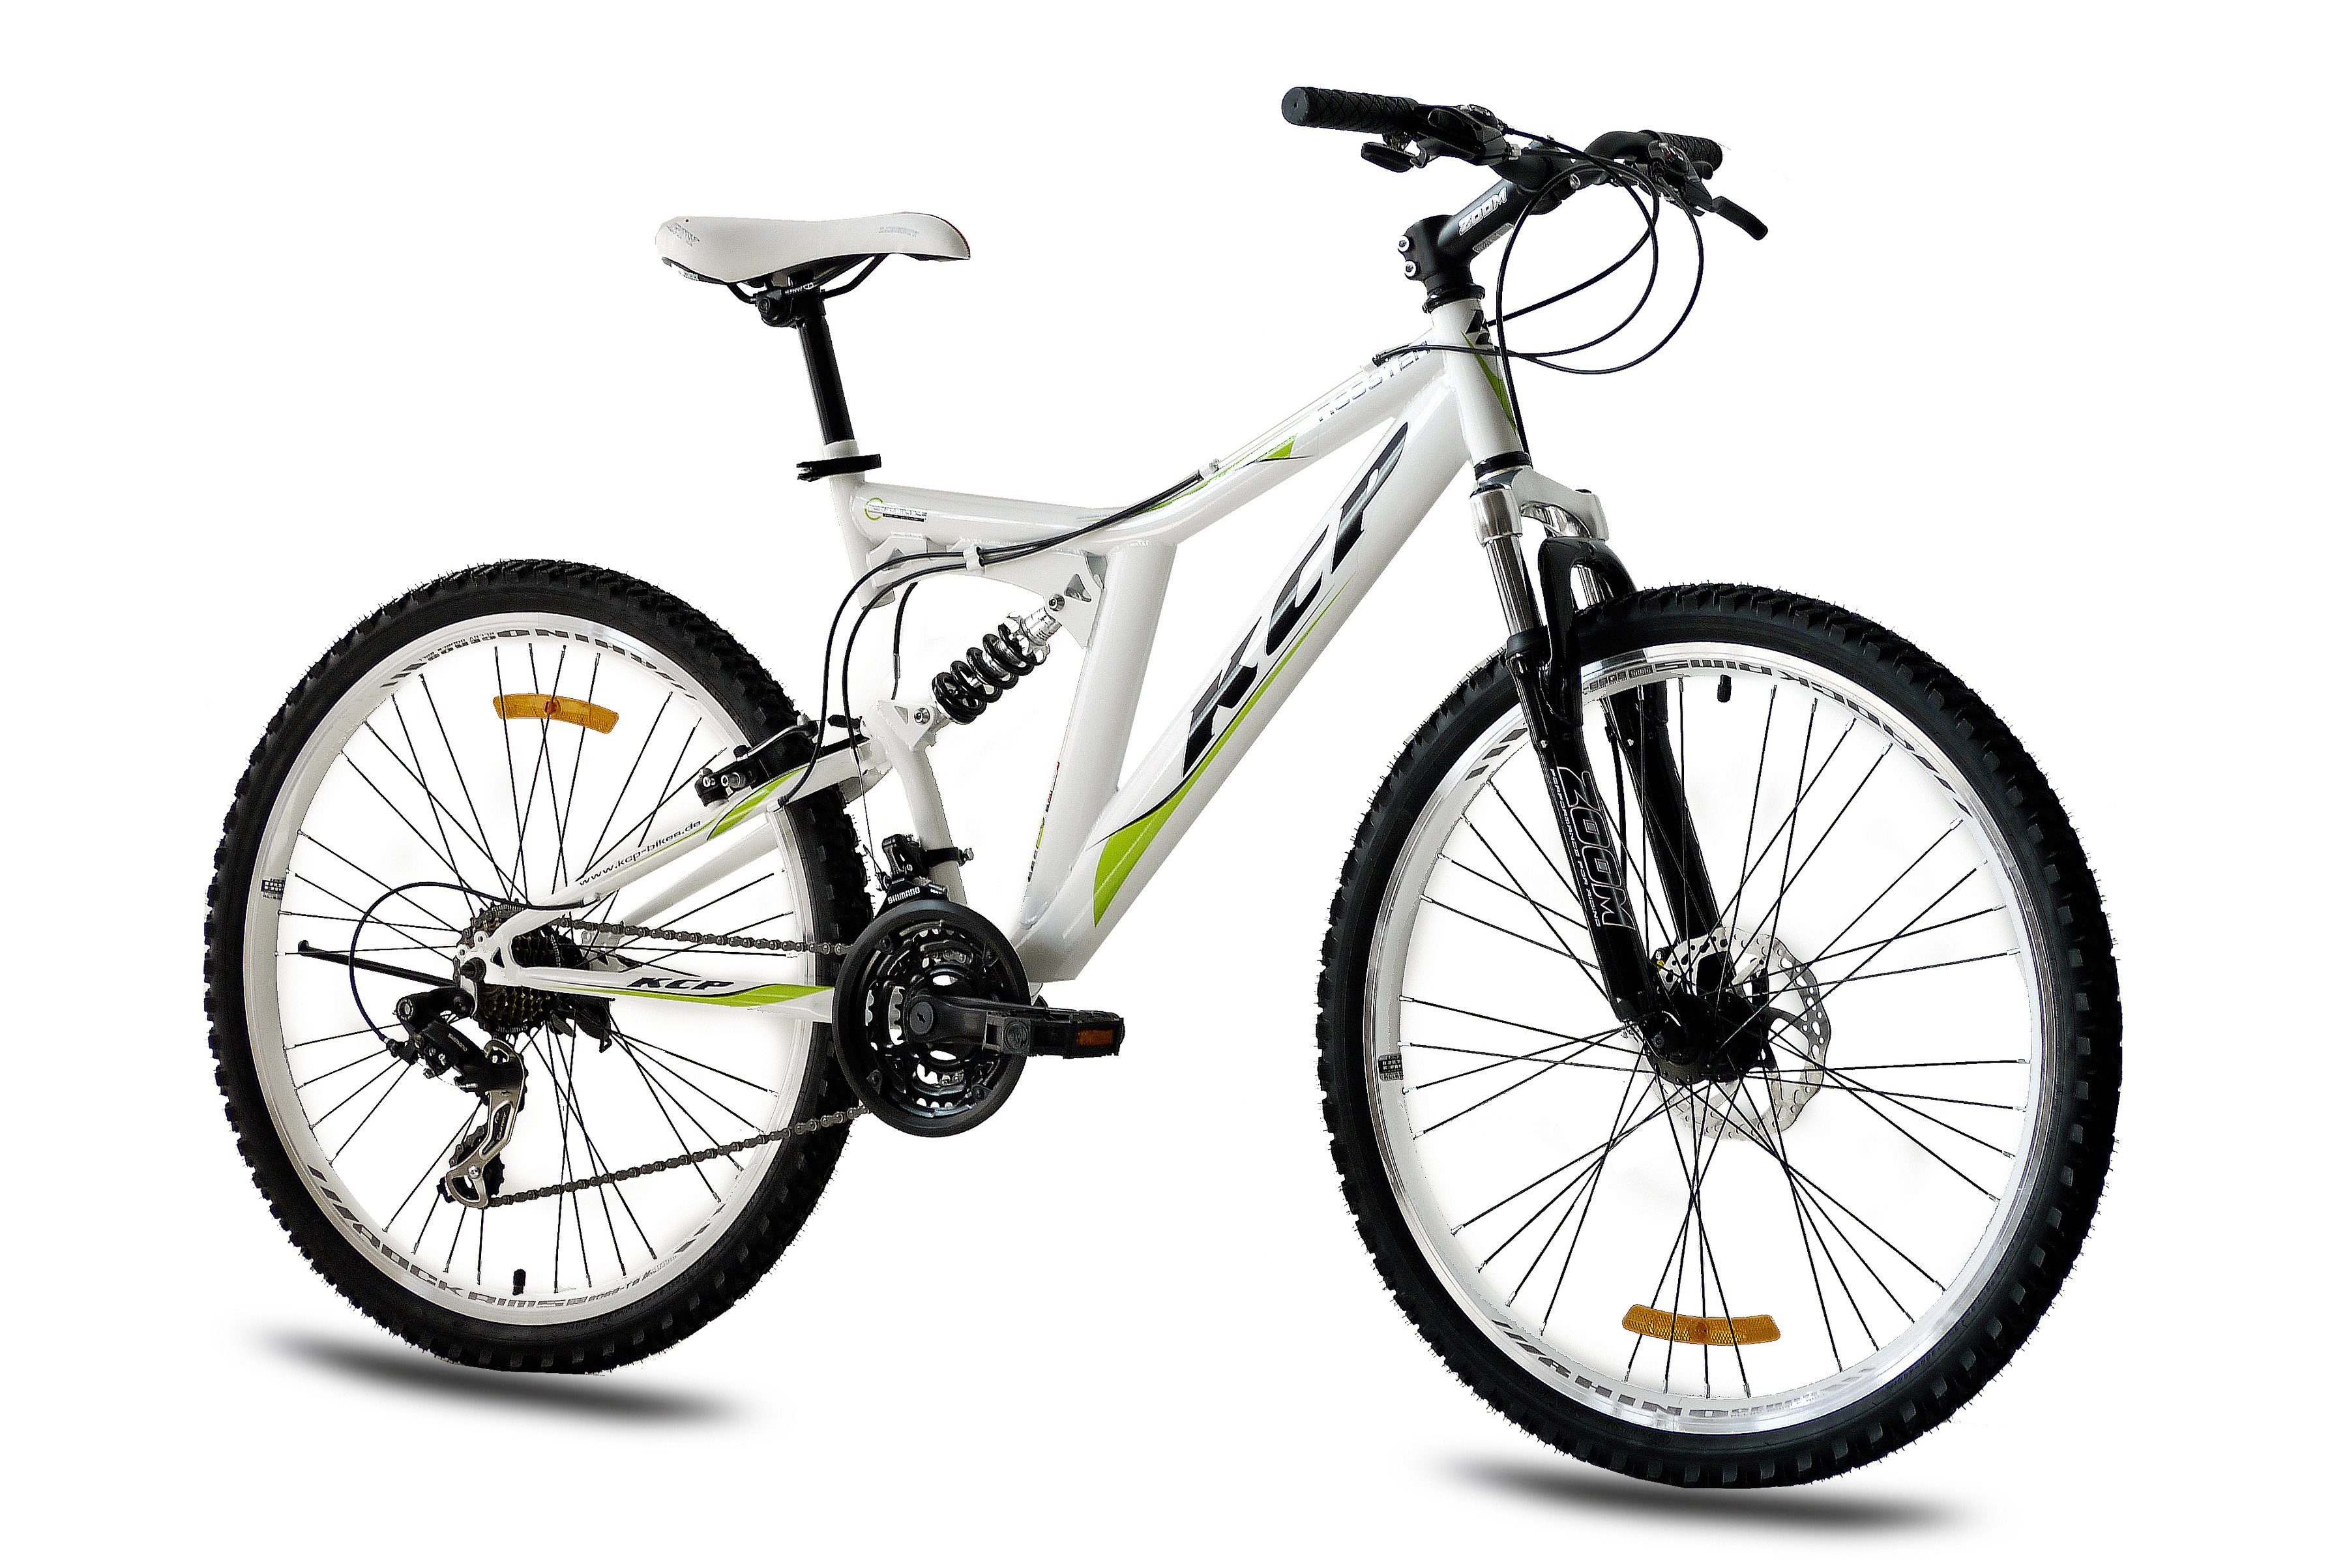 Mountainbike »Rooster, 66,04 cm (26 Zoll)«